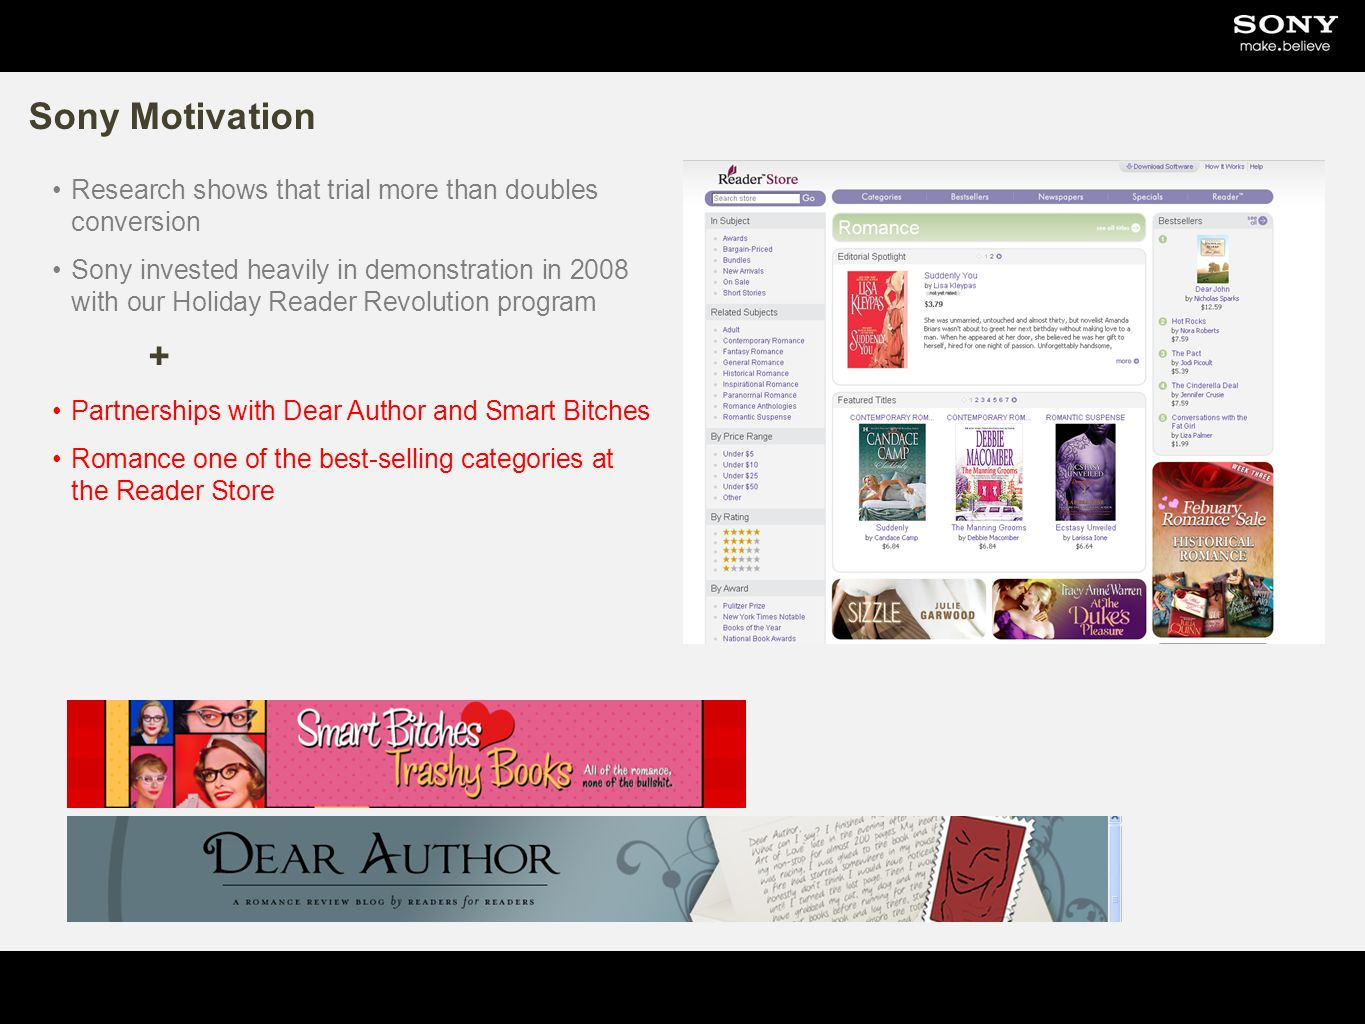 Sony Motivation Research shows that trial more than doubles conversion Sony invested heavily in demonstration in 2008 with our Holiday Reader Revolution program + Partnerships with Dear Author and Smart Bitches Romance one of the best-selling categories at the Reader Store